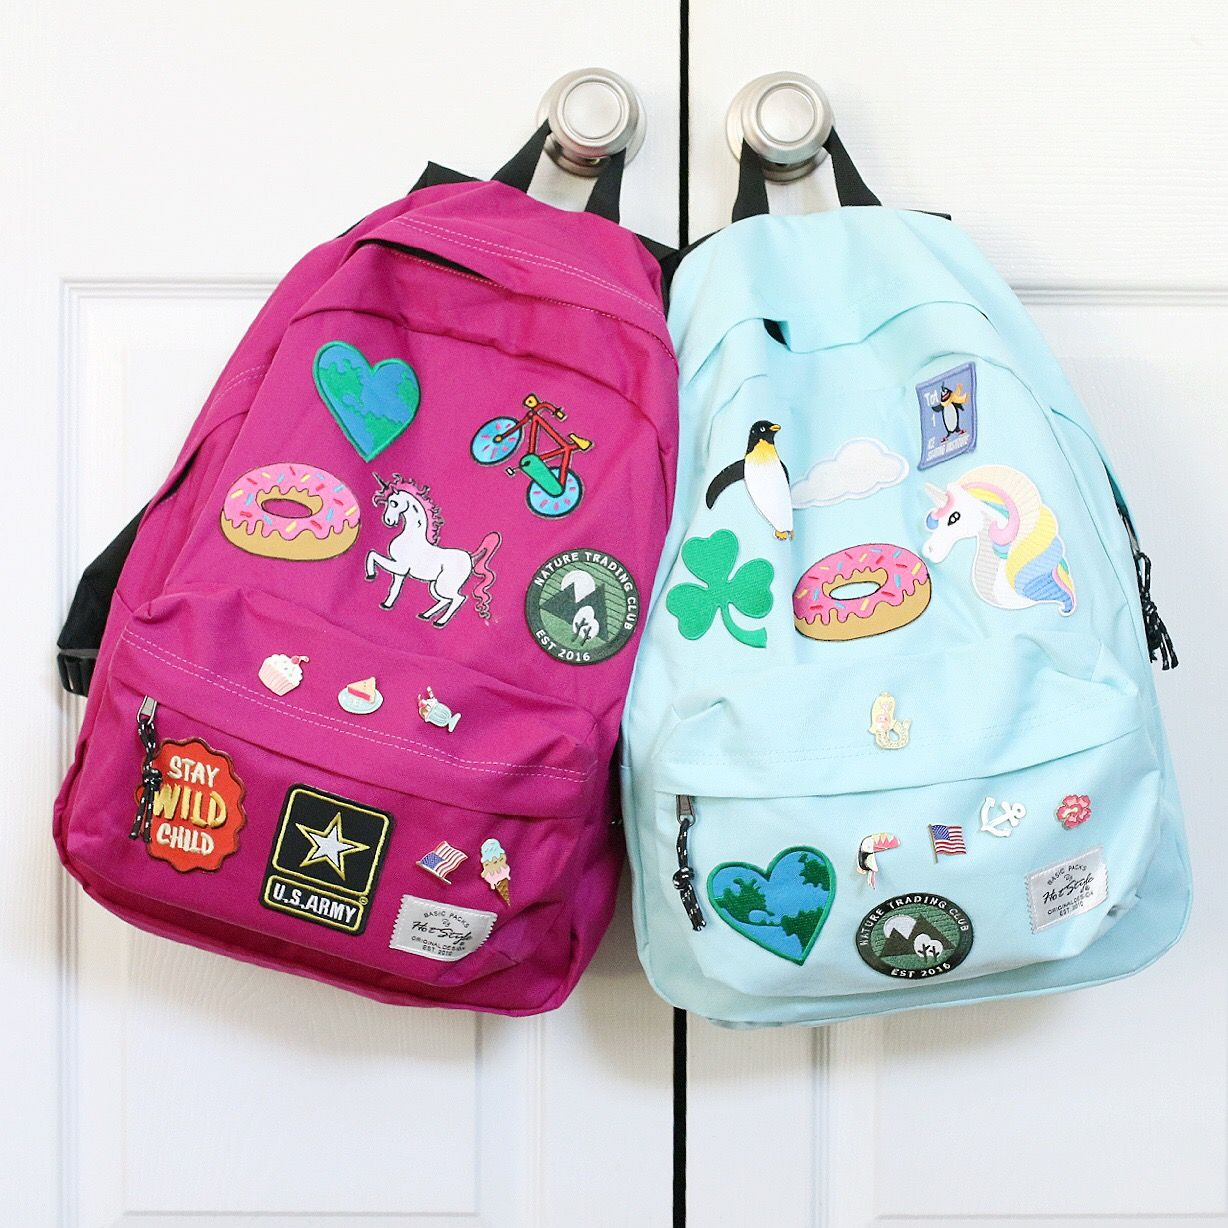 DIY Backpacks for School Backpack decoration, Diy